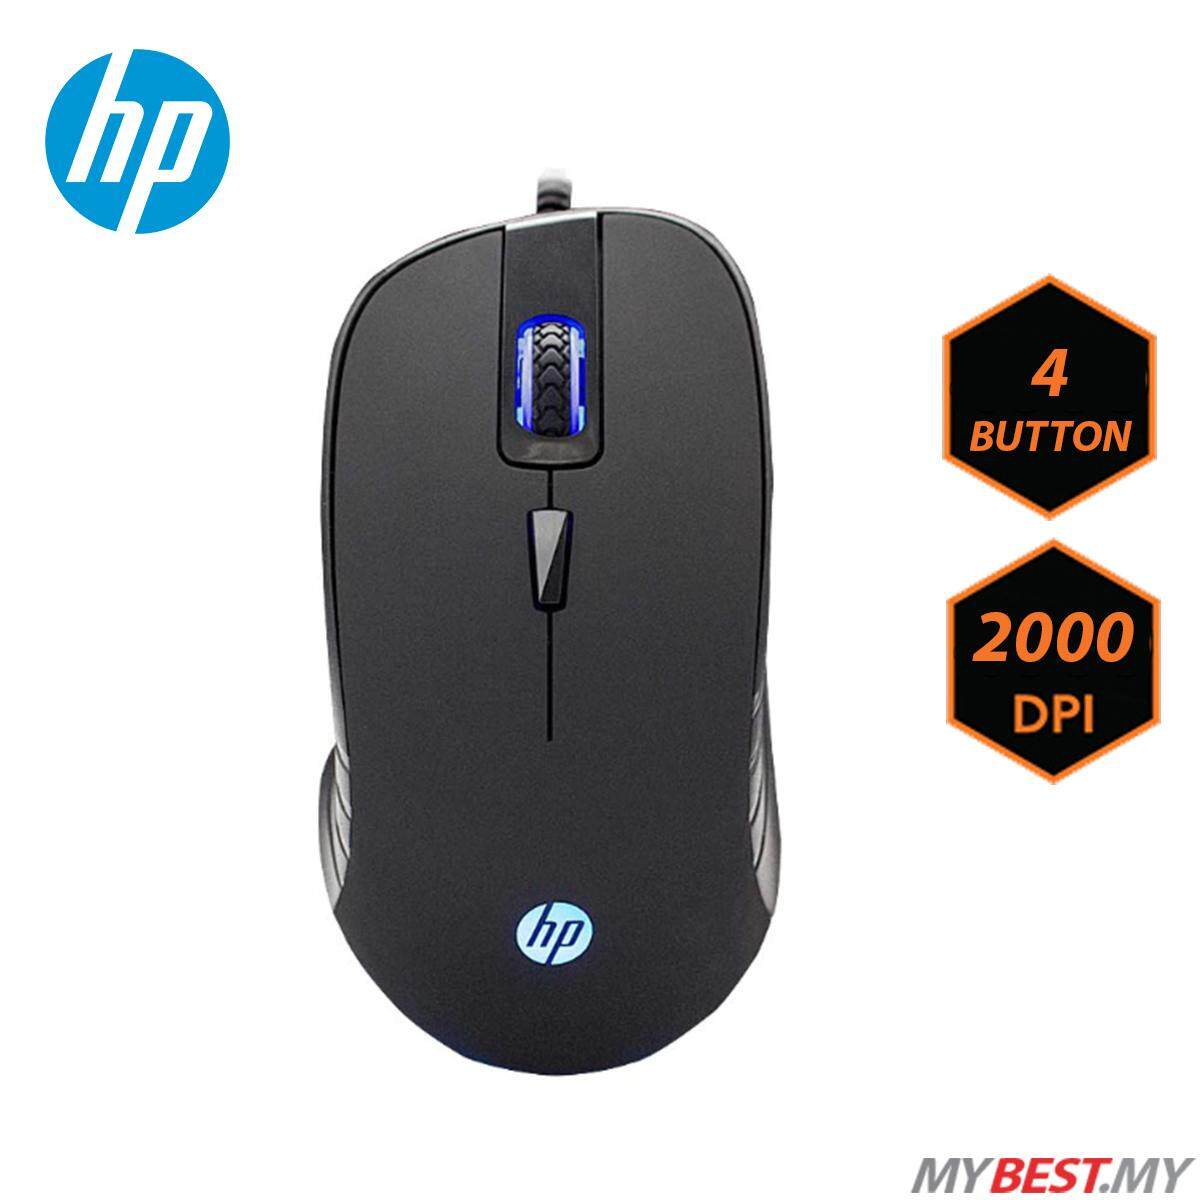 6840d9e0e06 HP G100 Wired Optical USB 2000DPI Wired Mice Gaming Mouse Laptop Computer  Office